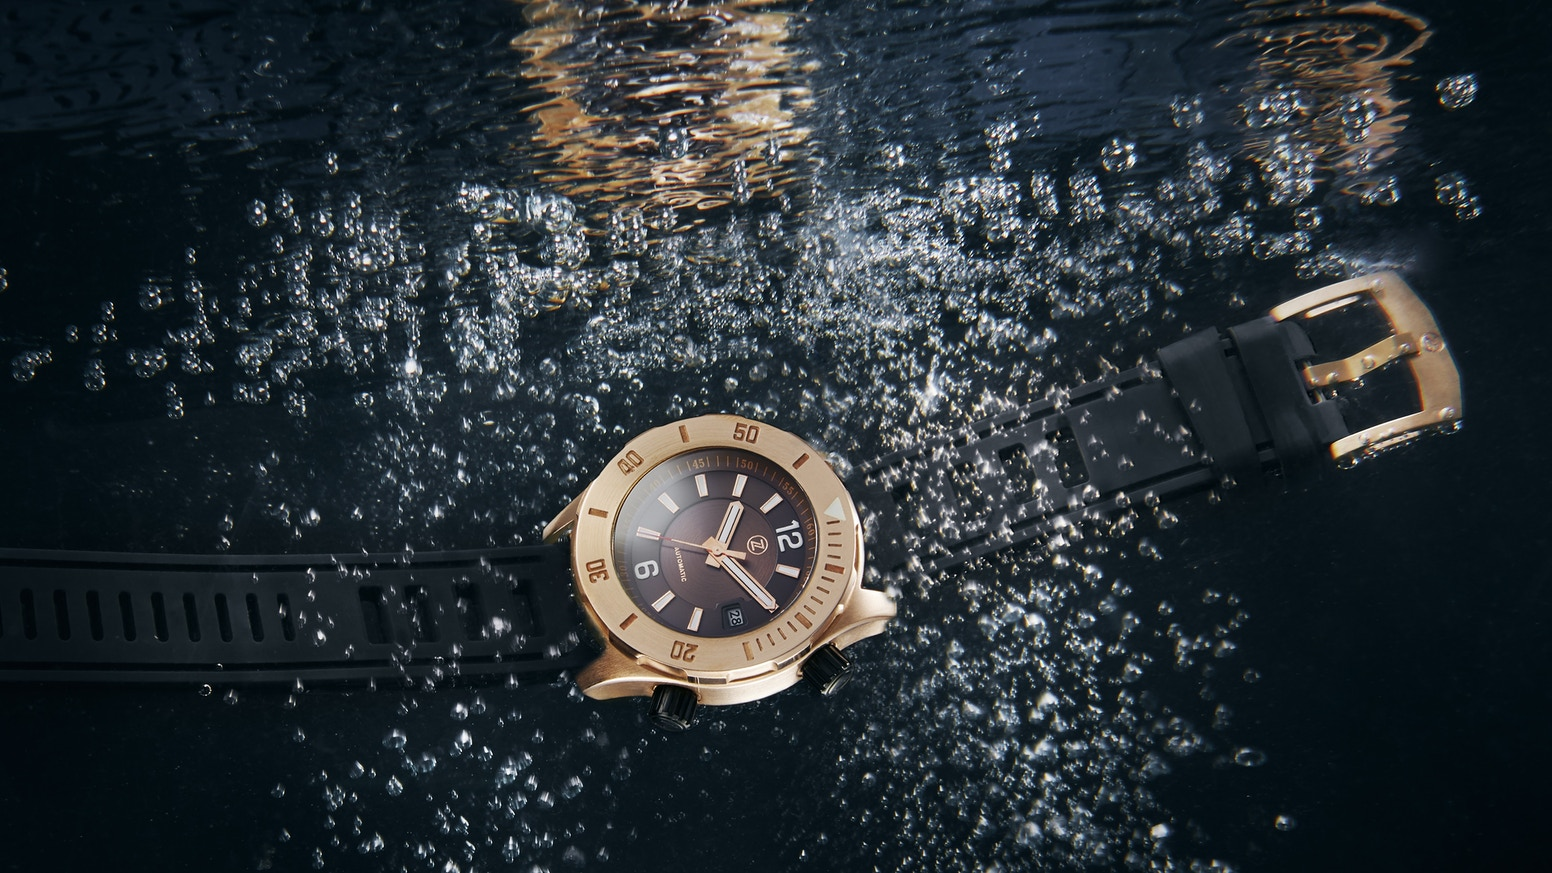 A watch built to withstand 3000m of crushing water resistance and crafted from marine bronze which ages based on your experiences.